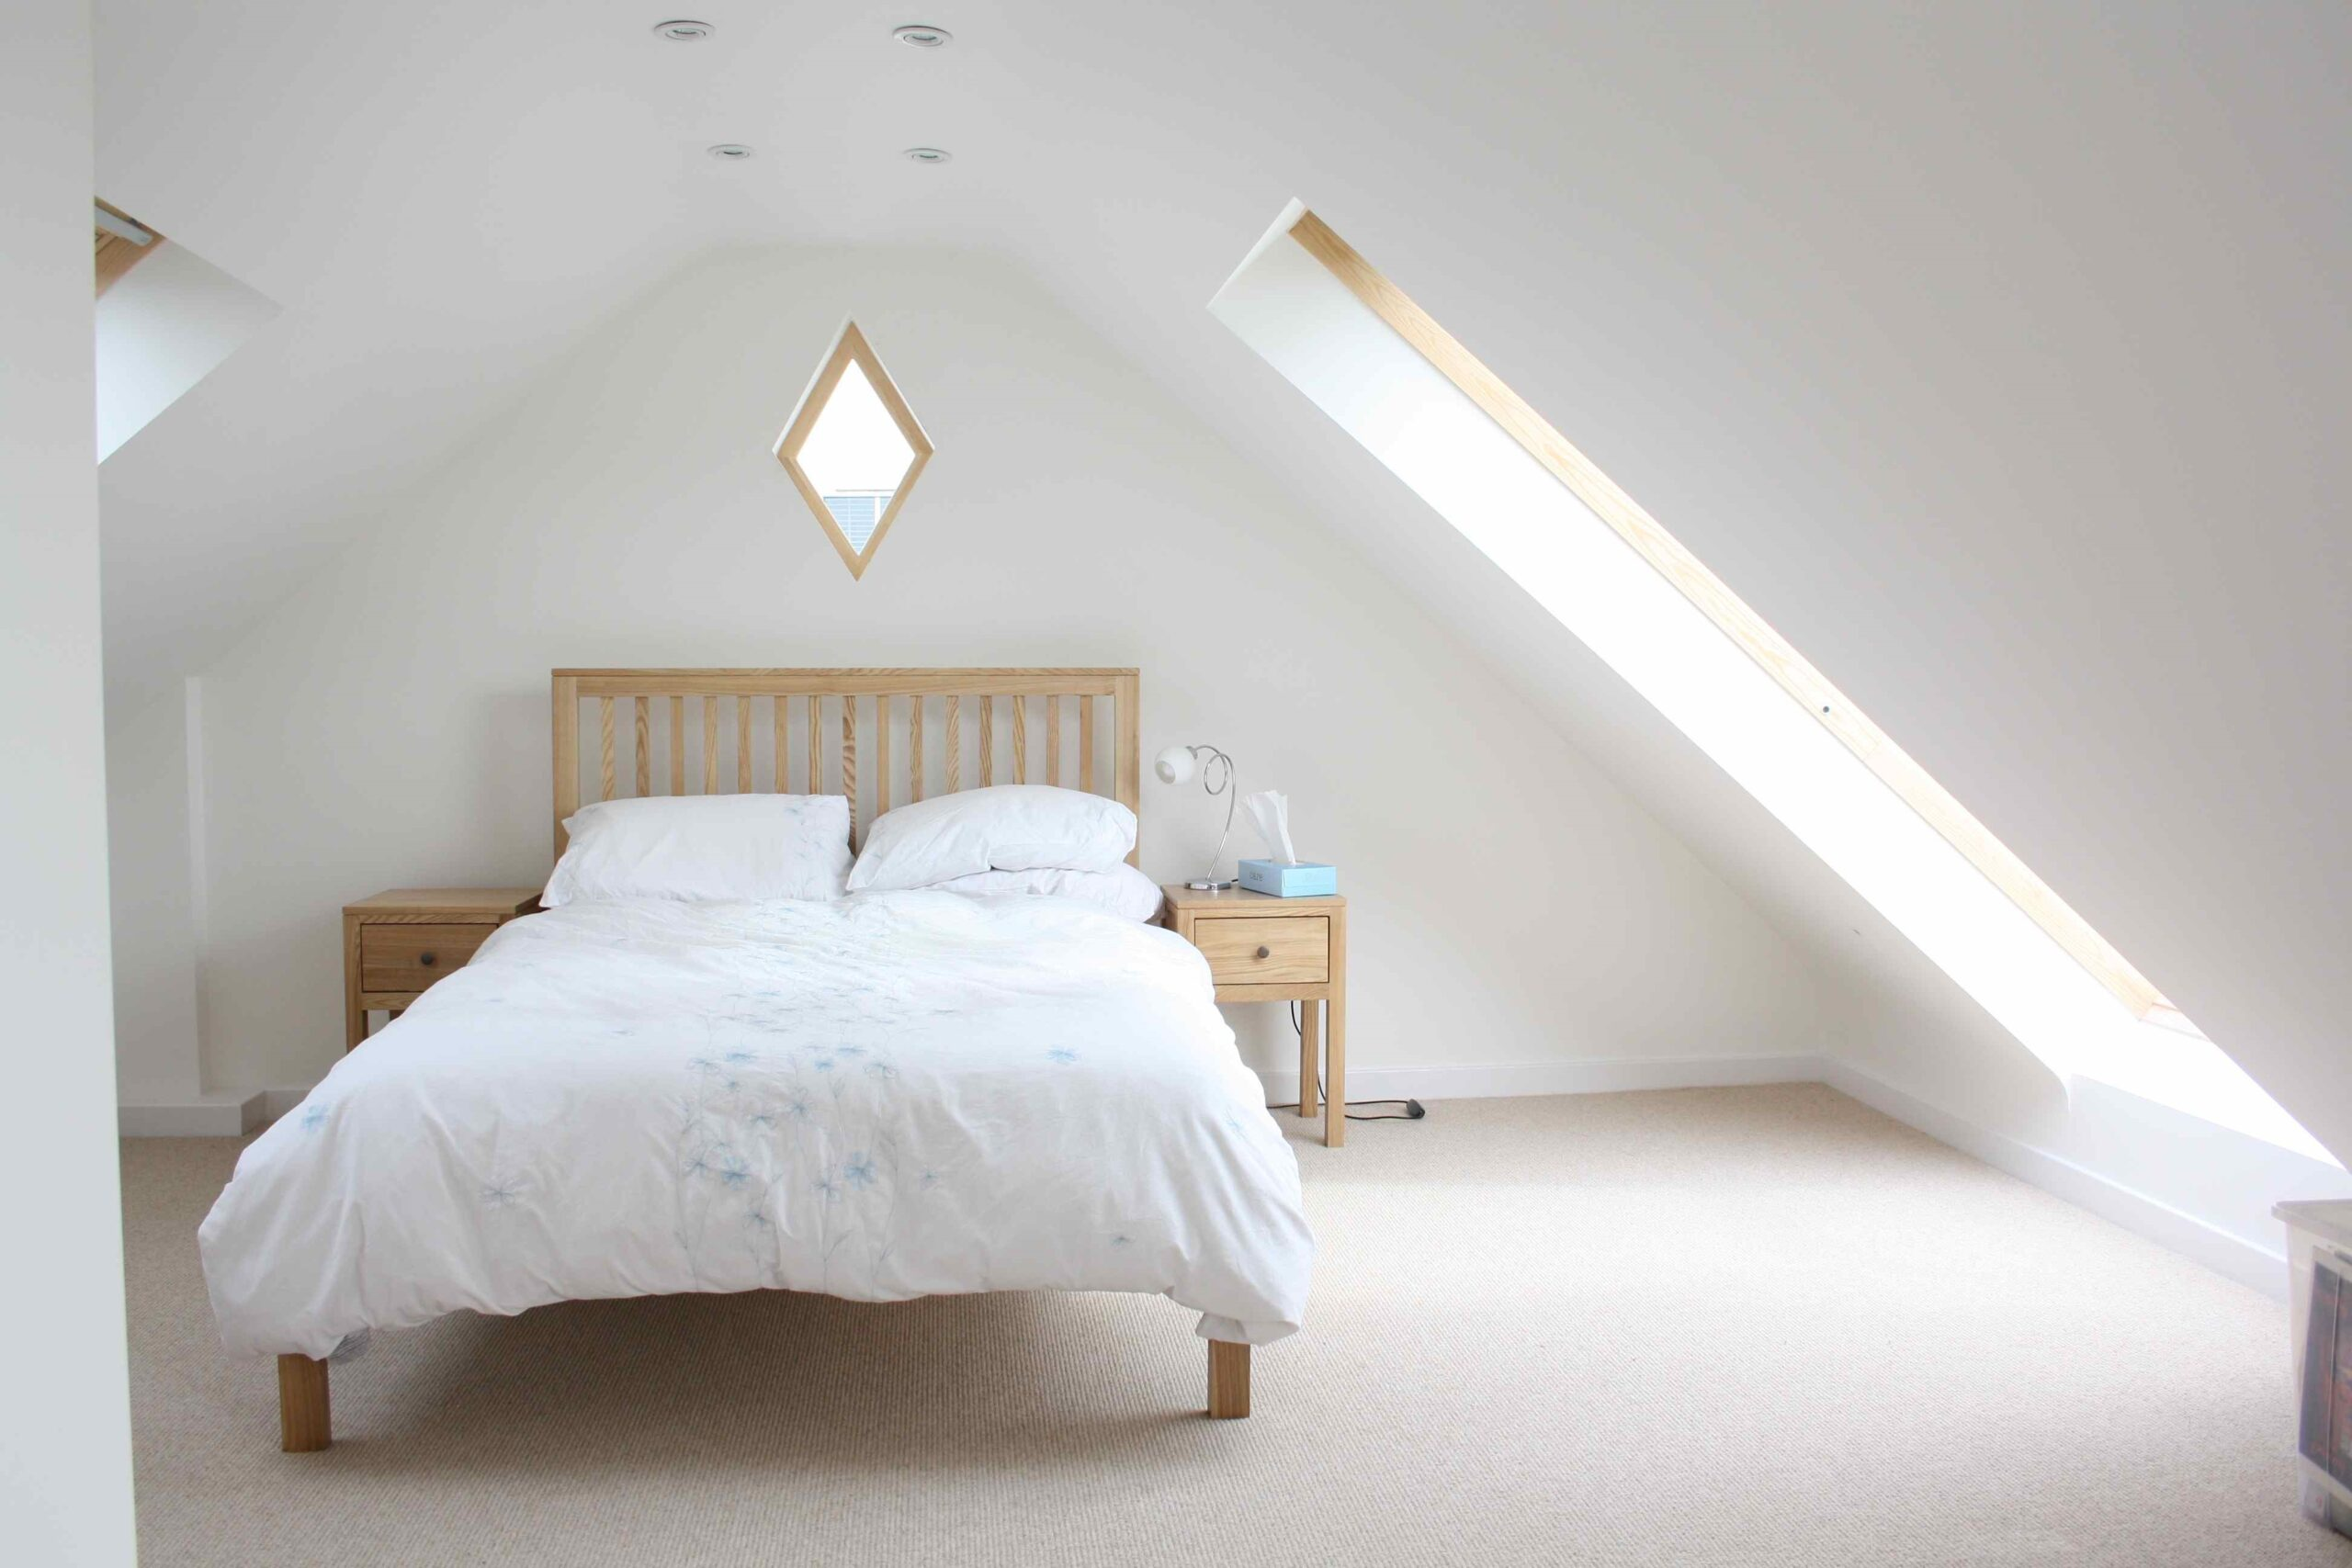 Velux Loft Conversion Velux Loft Conversions Cost Plans